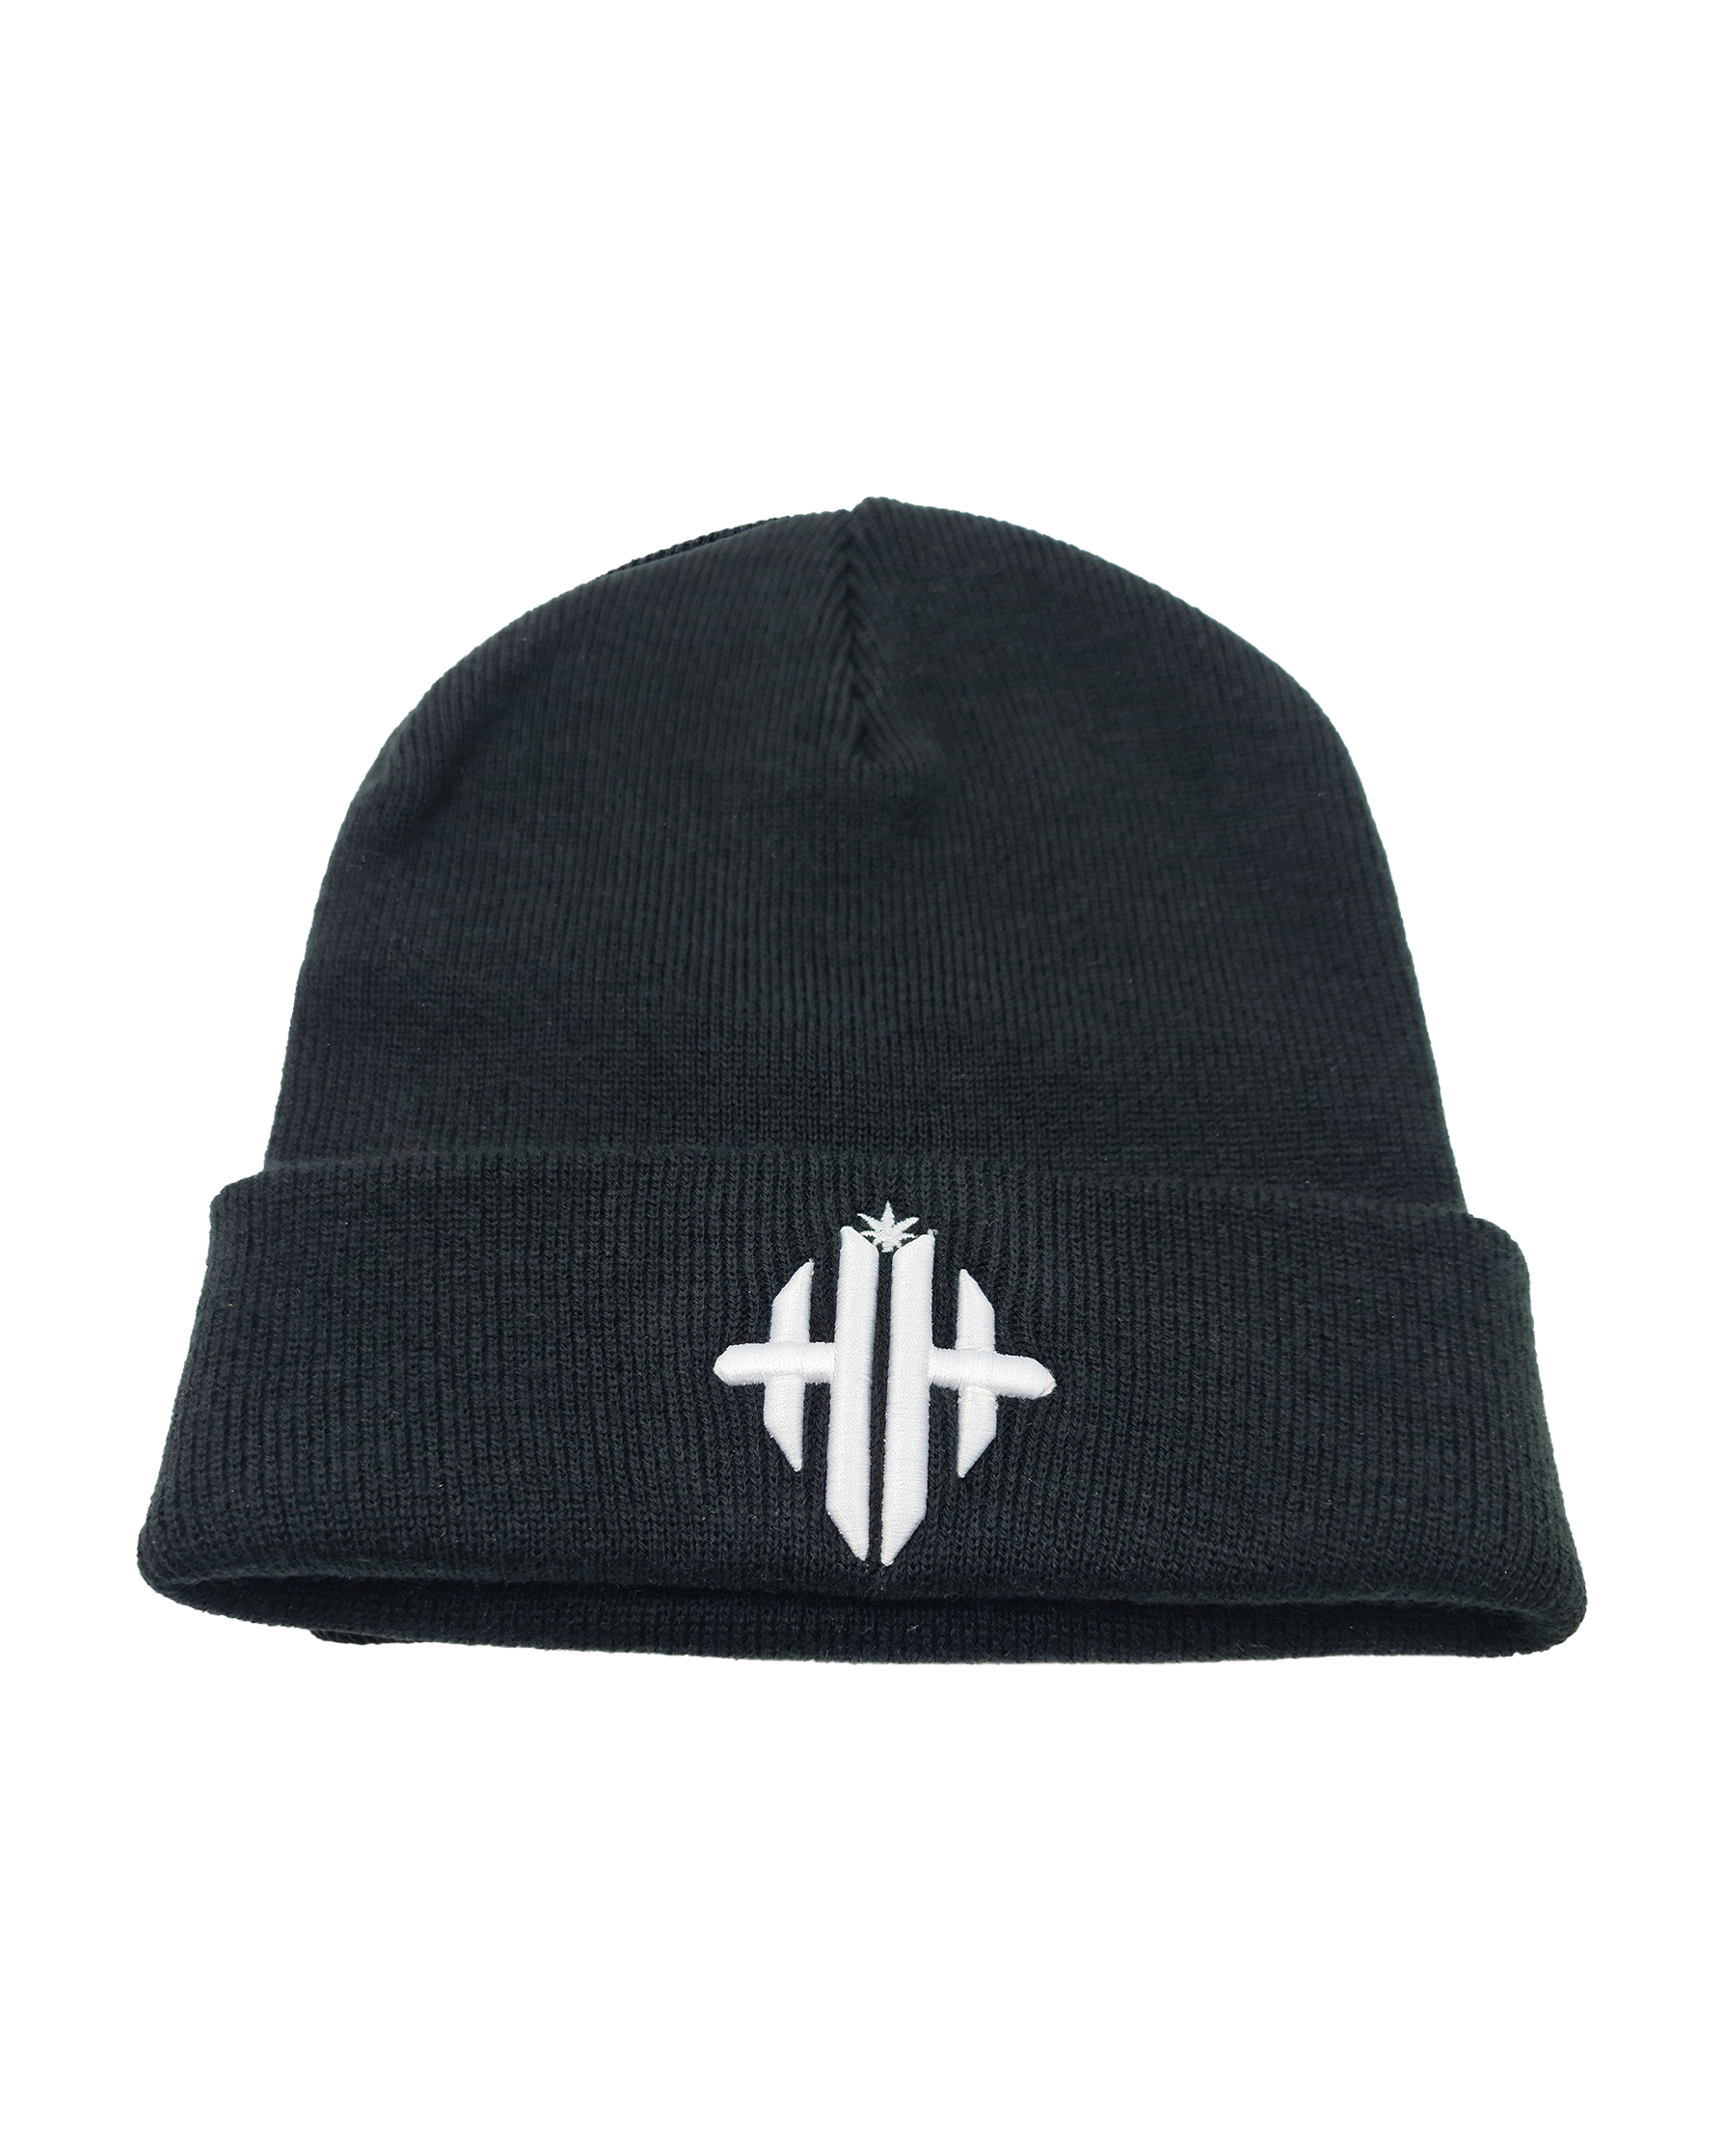 Herbman Hustlin Monogram Beanie - Black/White